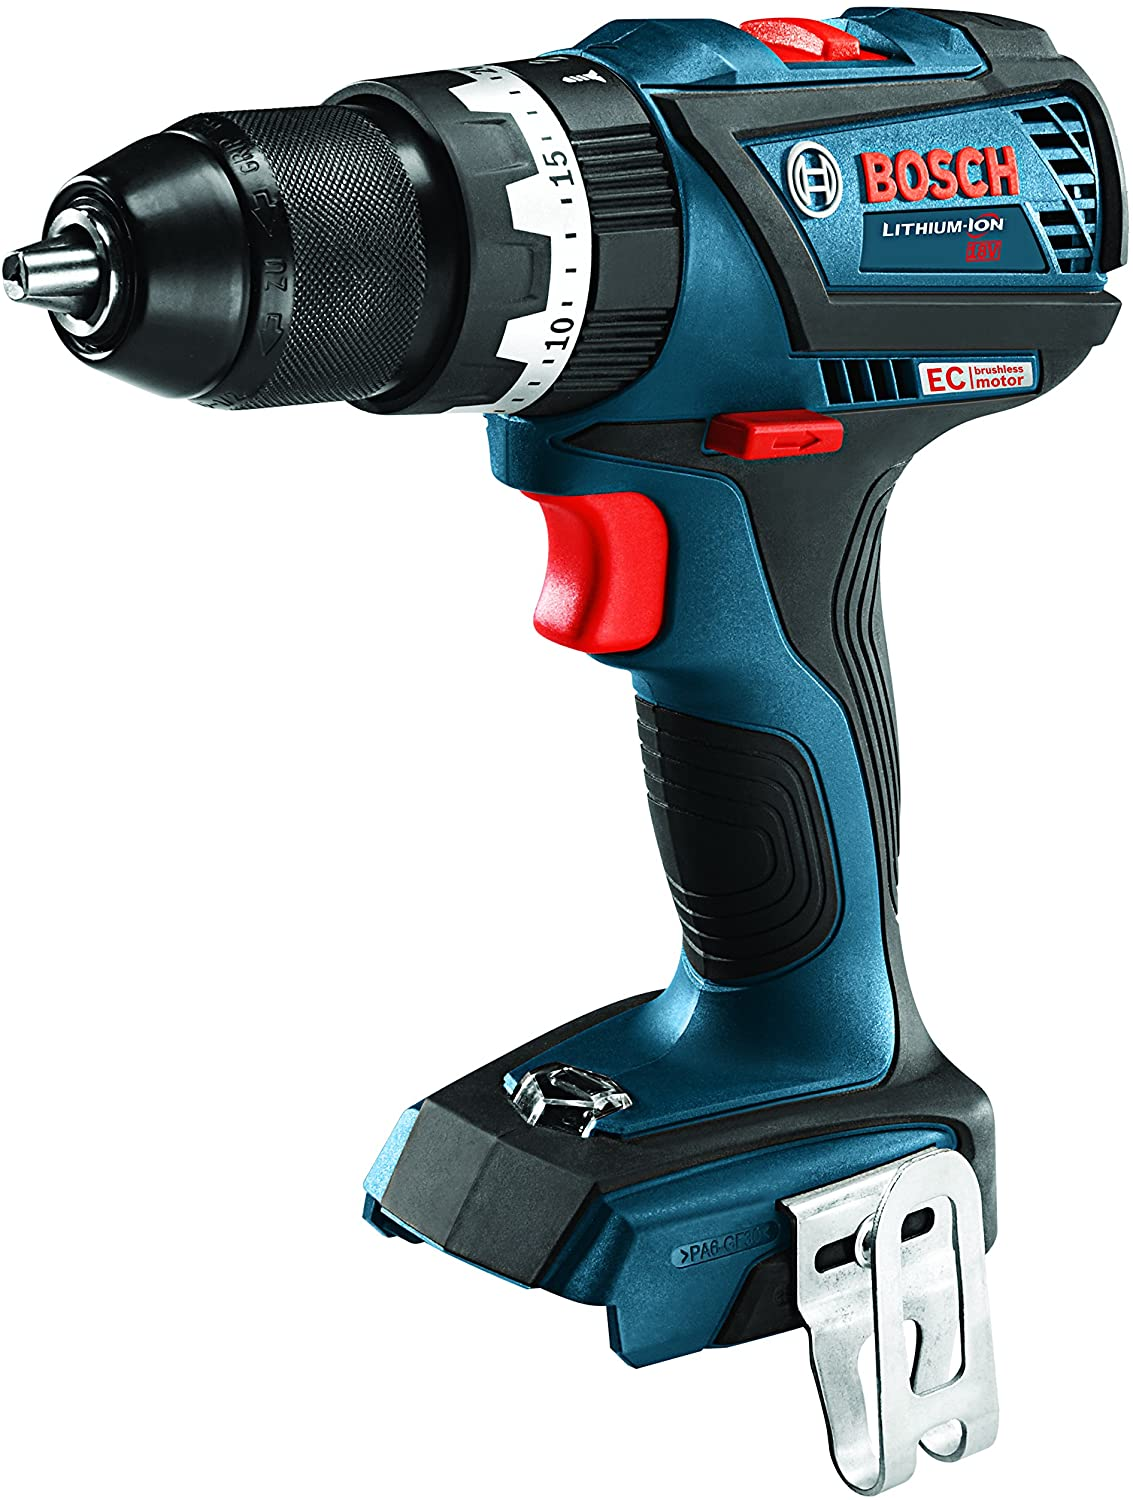 Bosch HDS183B 18V EC Brushless COMPACT Tough 1/2 In. Hammer Drill/Driver, Blue